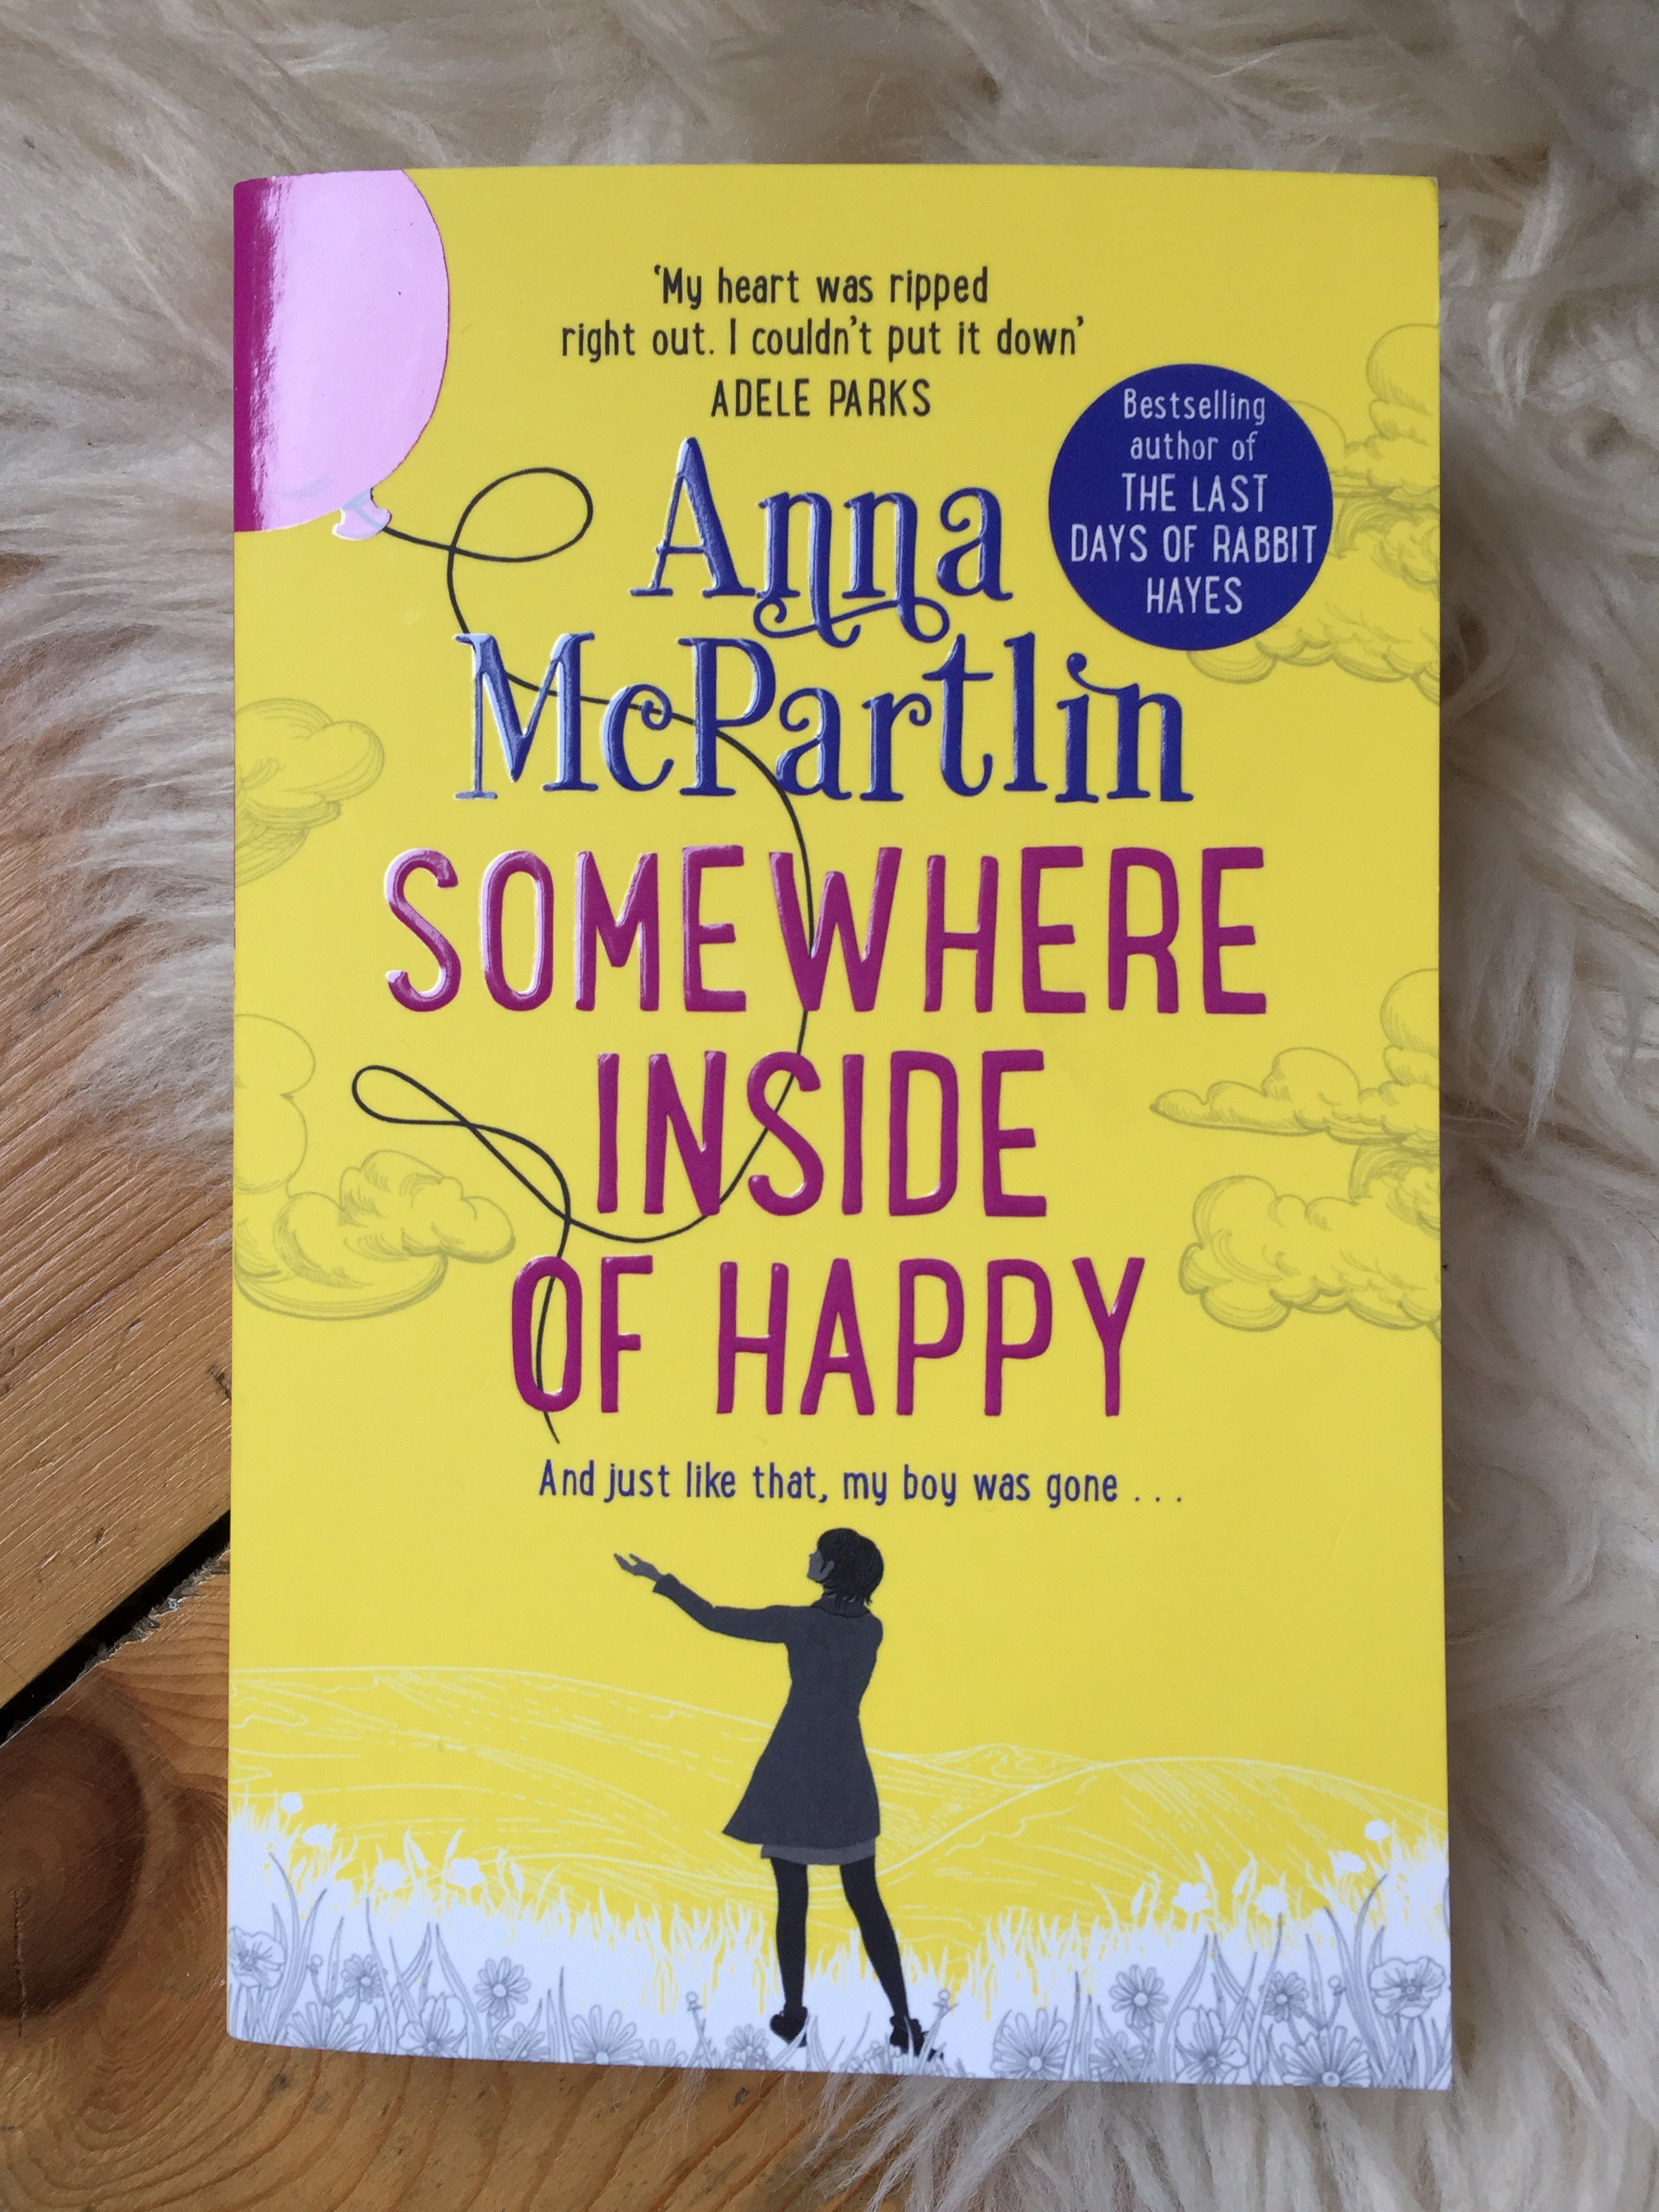 A paperback copy of Somewhere Inside of Happy